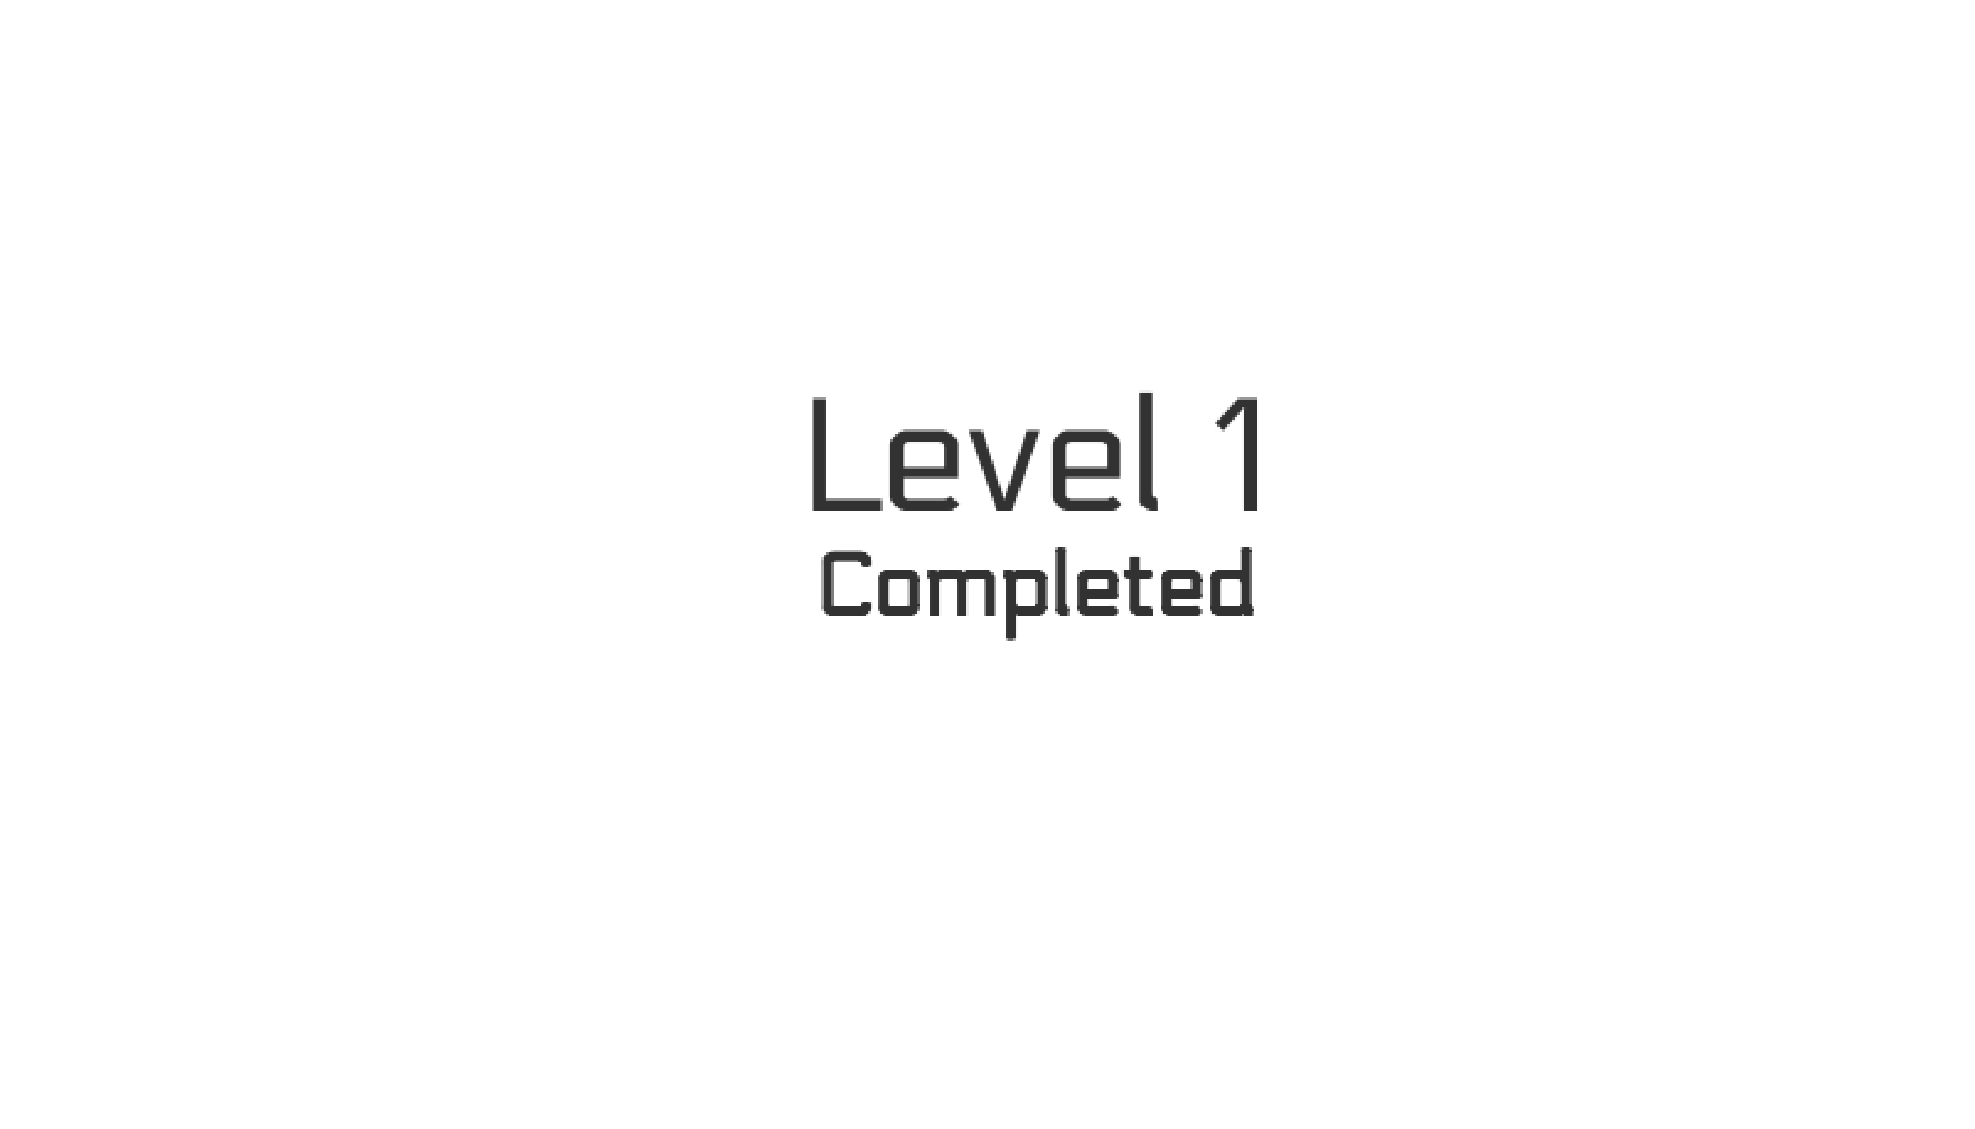 Level 1 completed